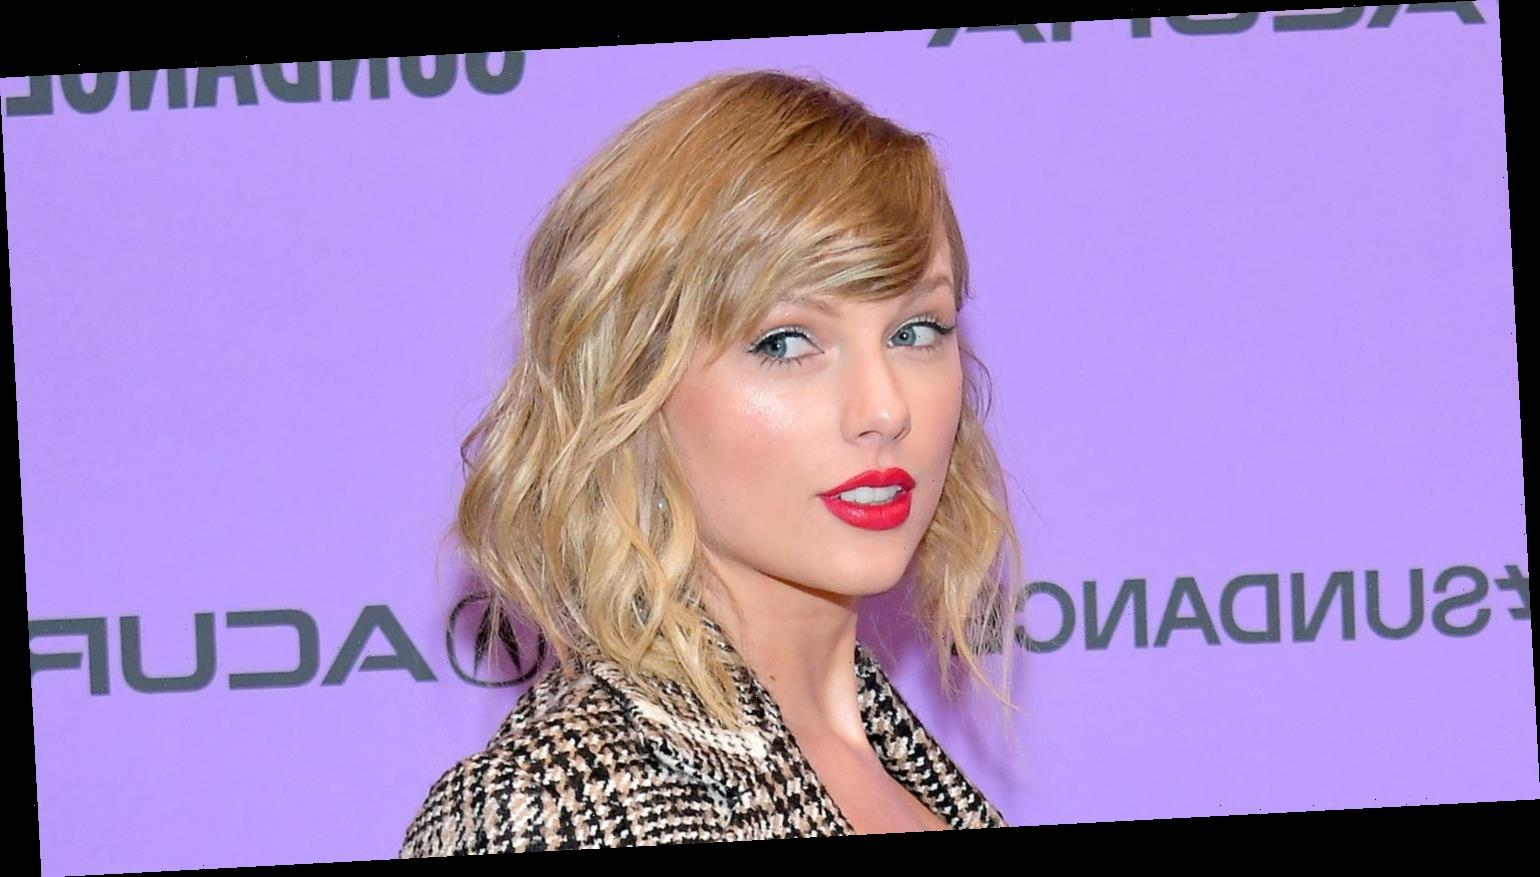 Taylor Swift Announces 'Fearless' Re-Recorded Album Release, 'Love Story' Dropping TONIGHT